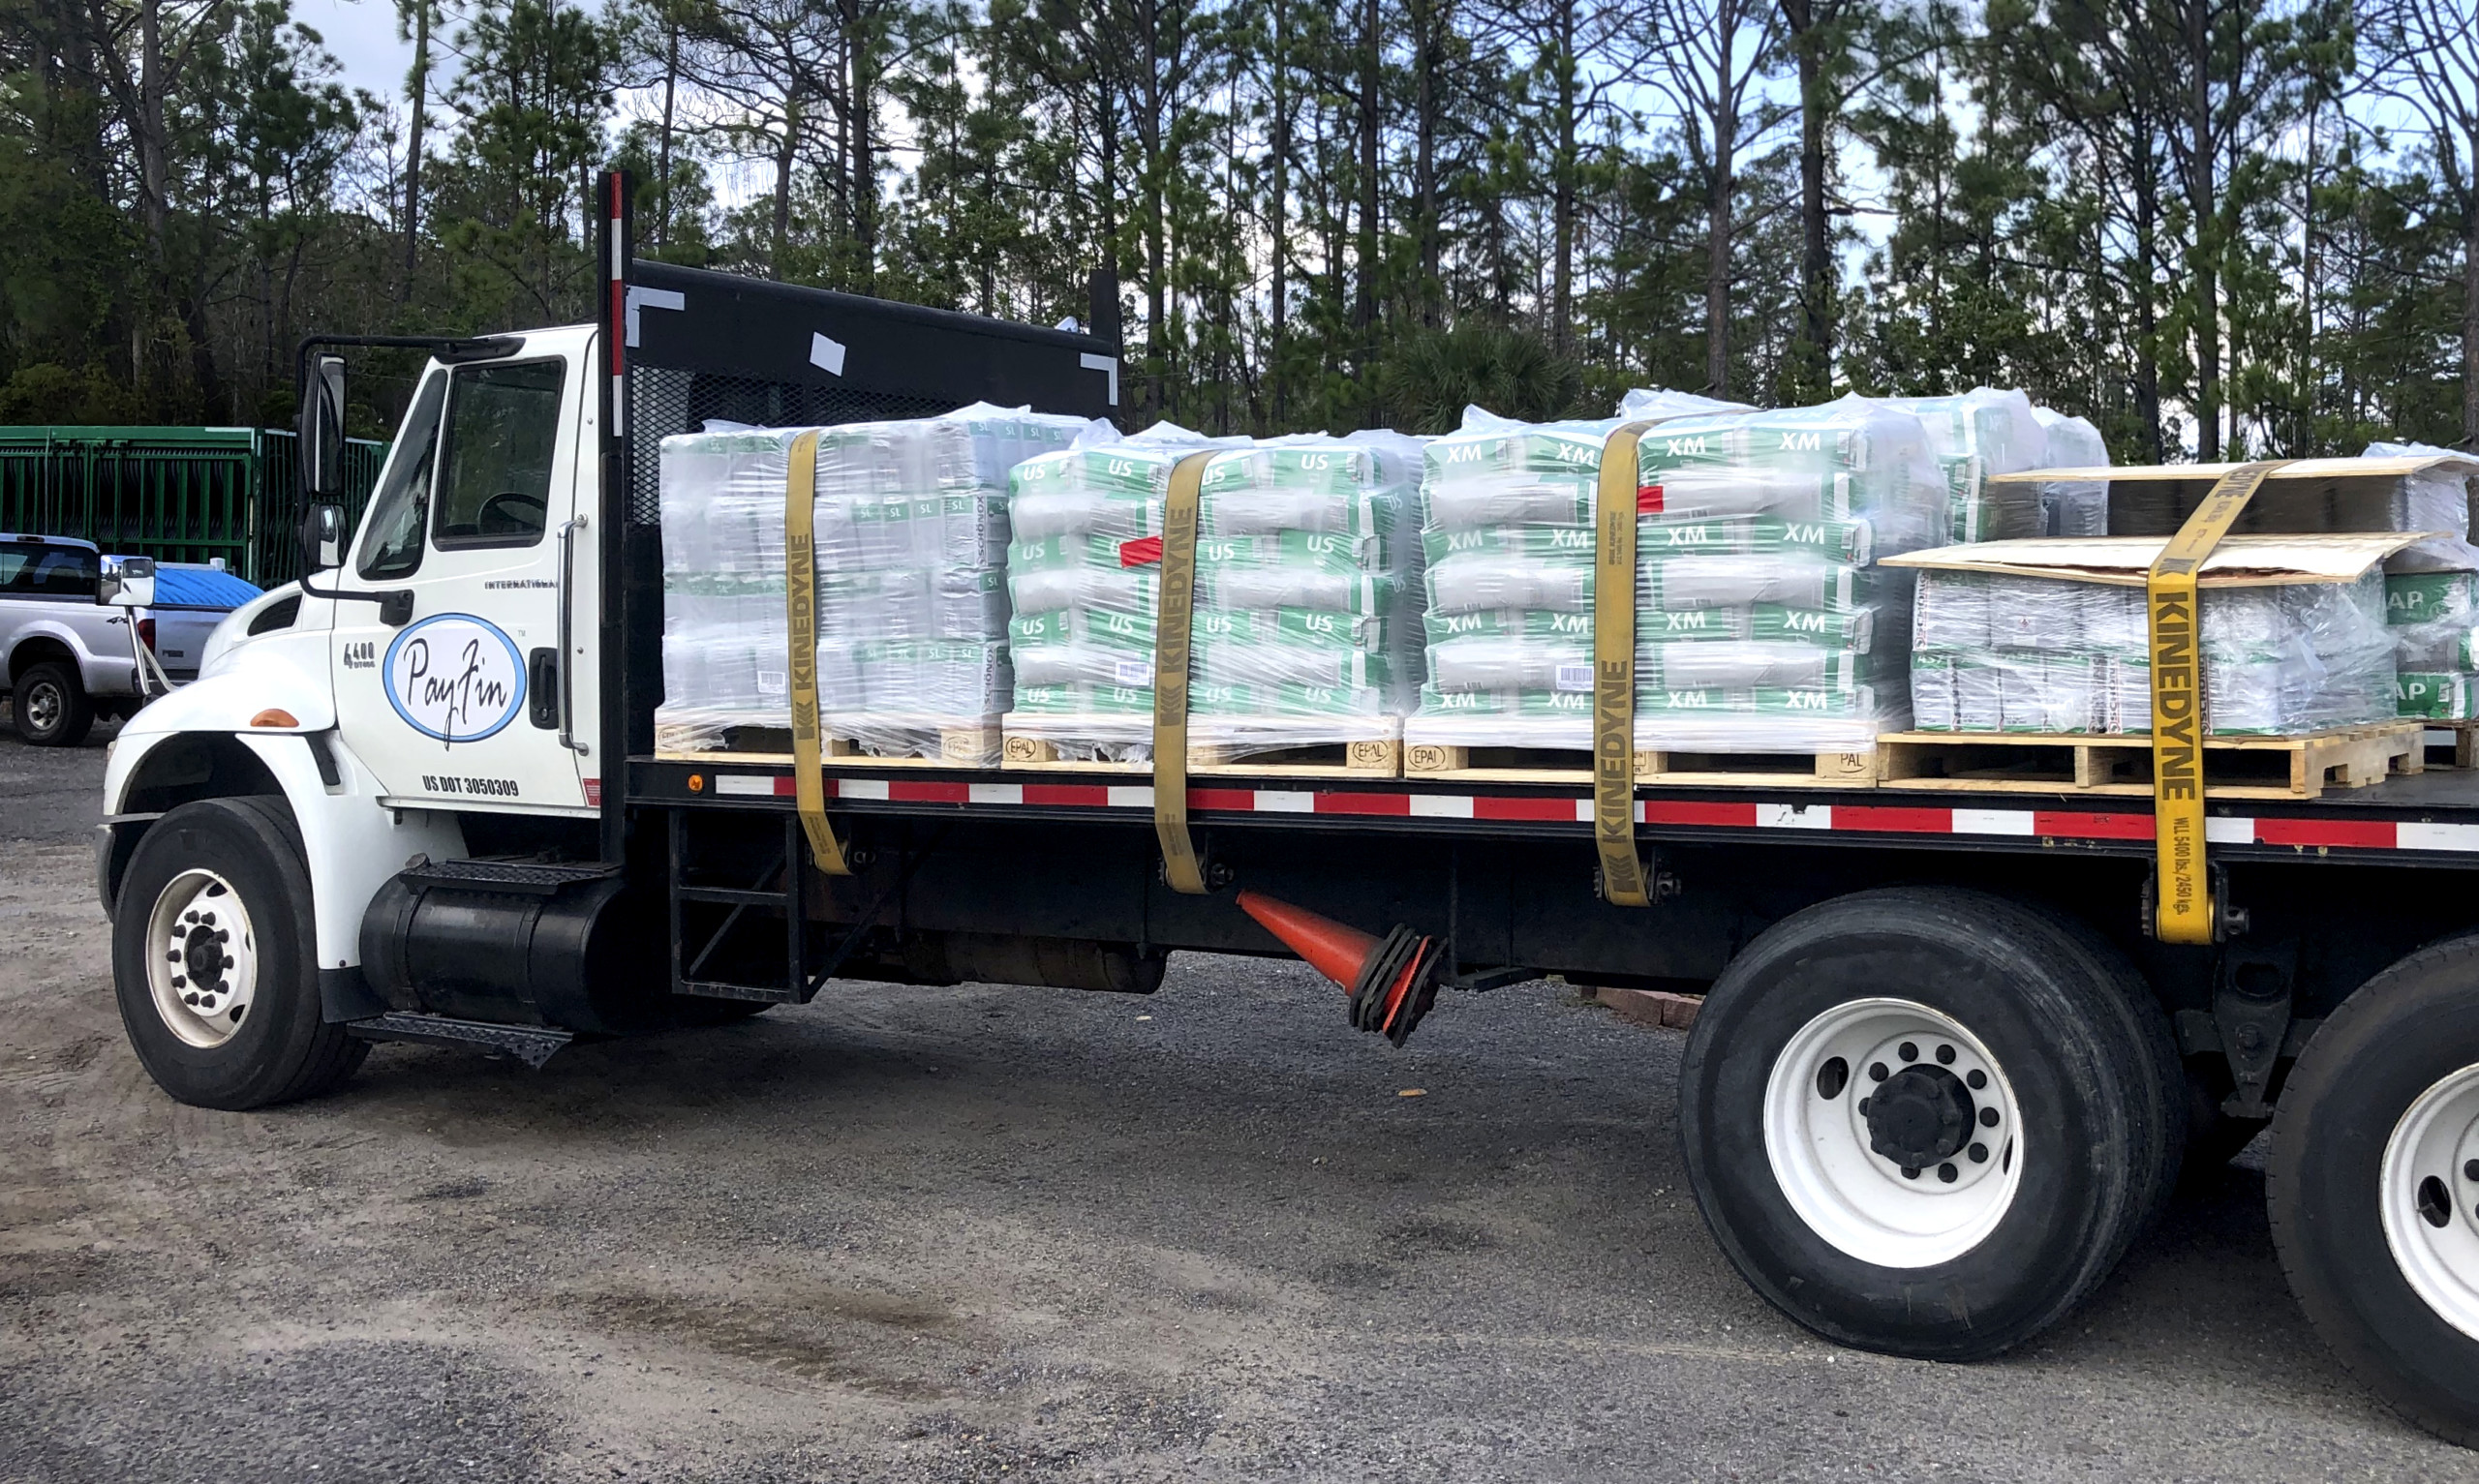 Payfin Distribution delivers to contractors in its Florida Panhandle region maximizing contractor time at the job site.